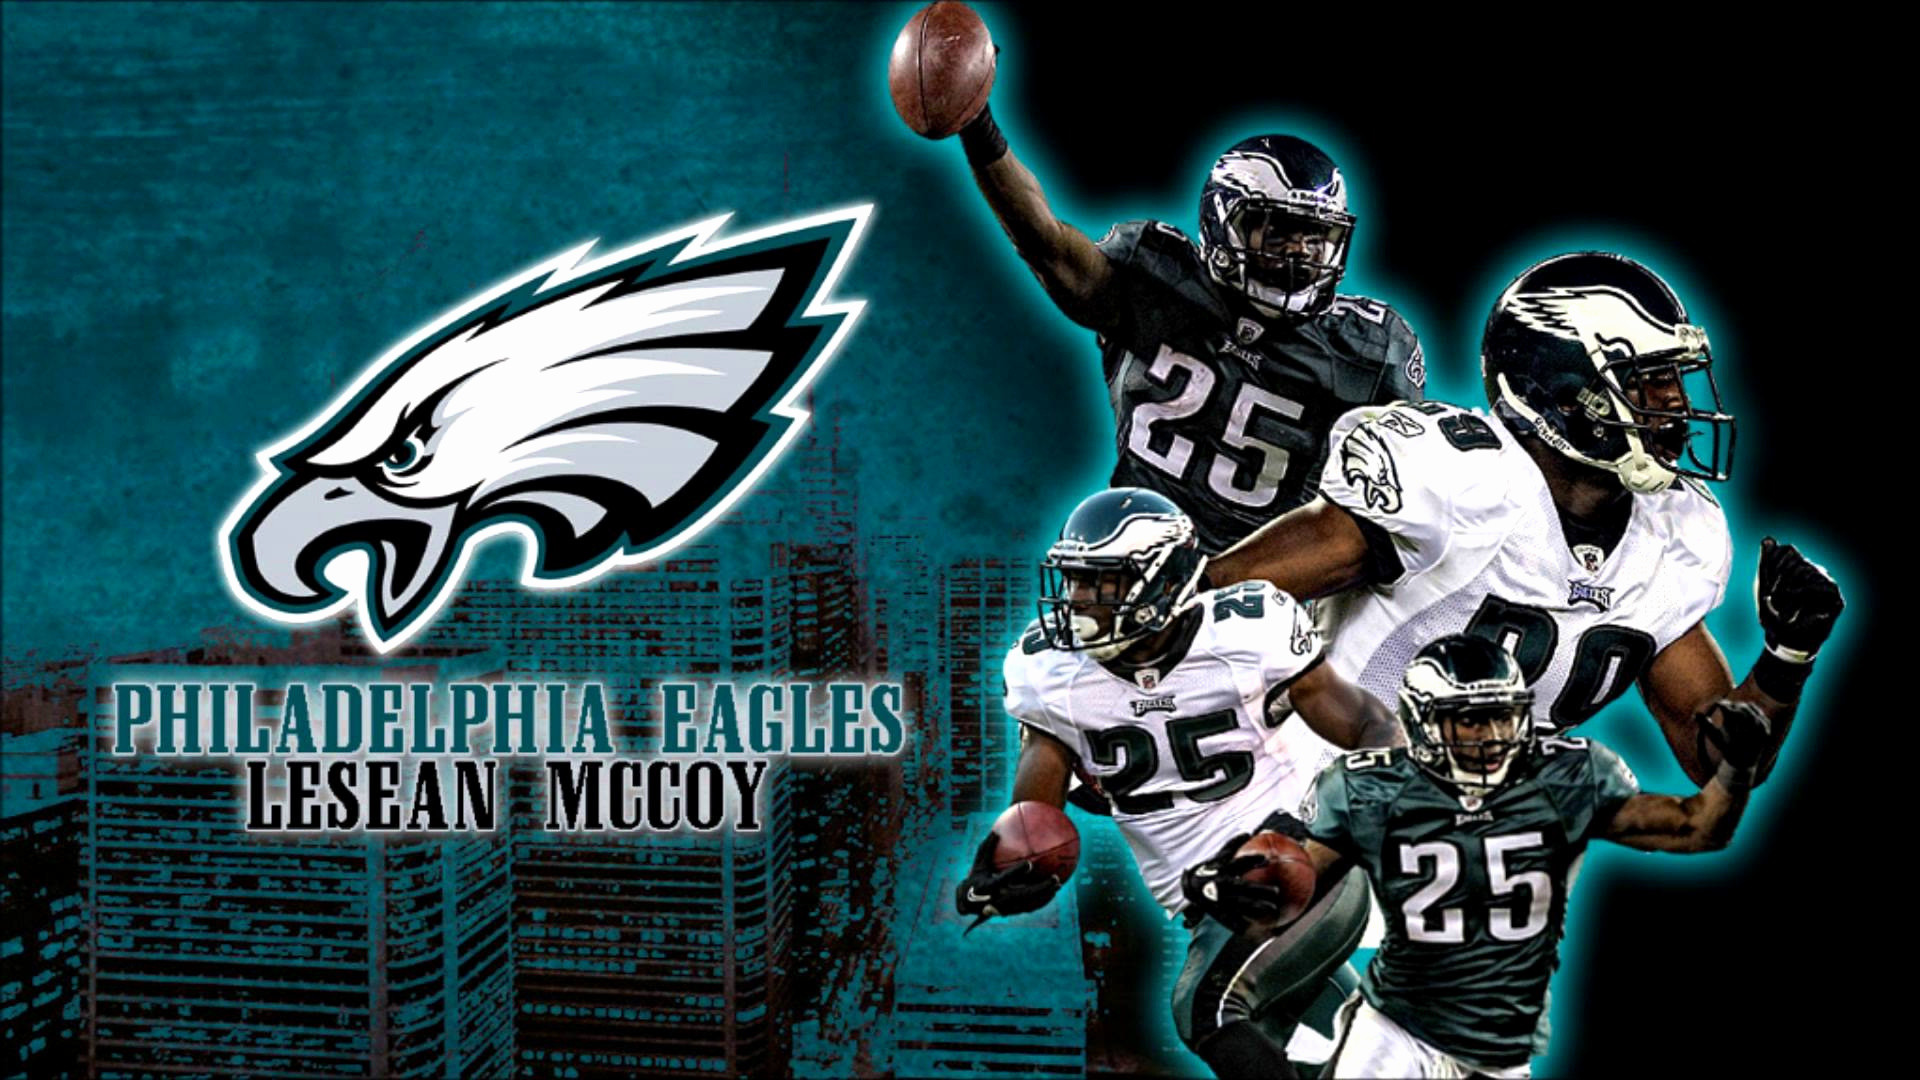 1920x1080 philadelphia eagles 2017 wallpaper 2018 Philadelphia Eagles Wallpapers - PC iPhone Android